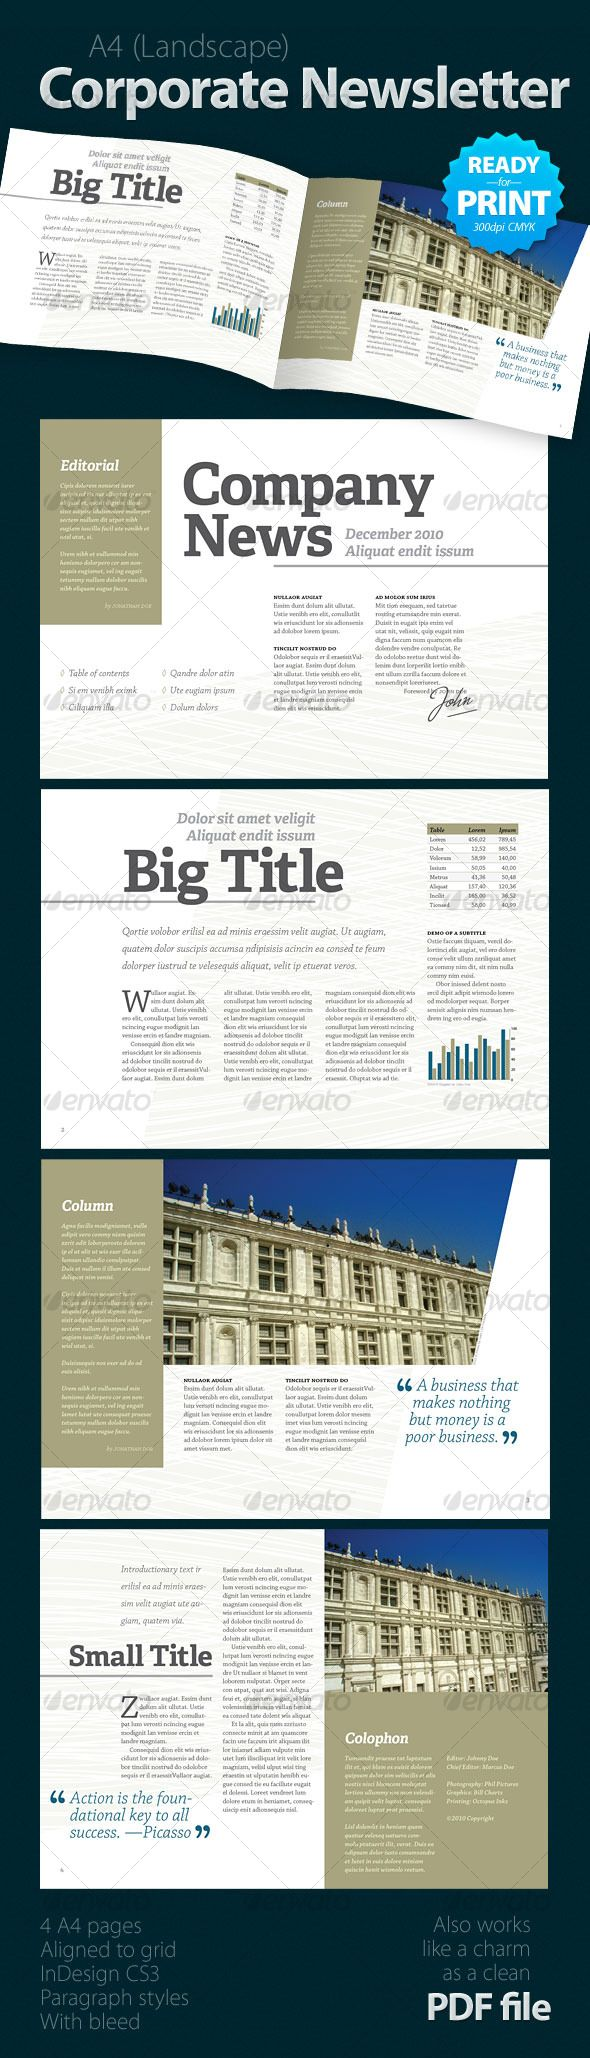 Corporate Newsletter (4 pages) - Newsletter Template InDesign INDD. Download here: http://graphicriver.net/item/corporate-newsletter-4-pages/124051?s_rank=469&ref=yinkira